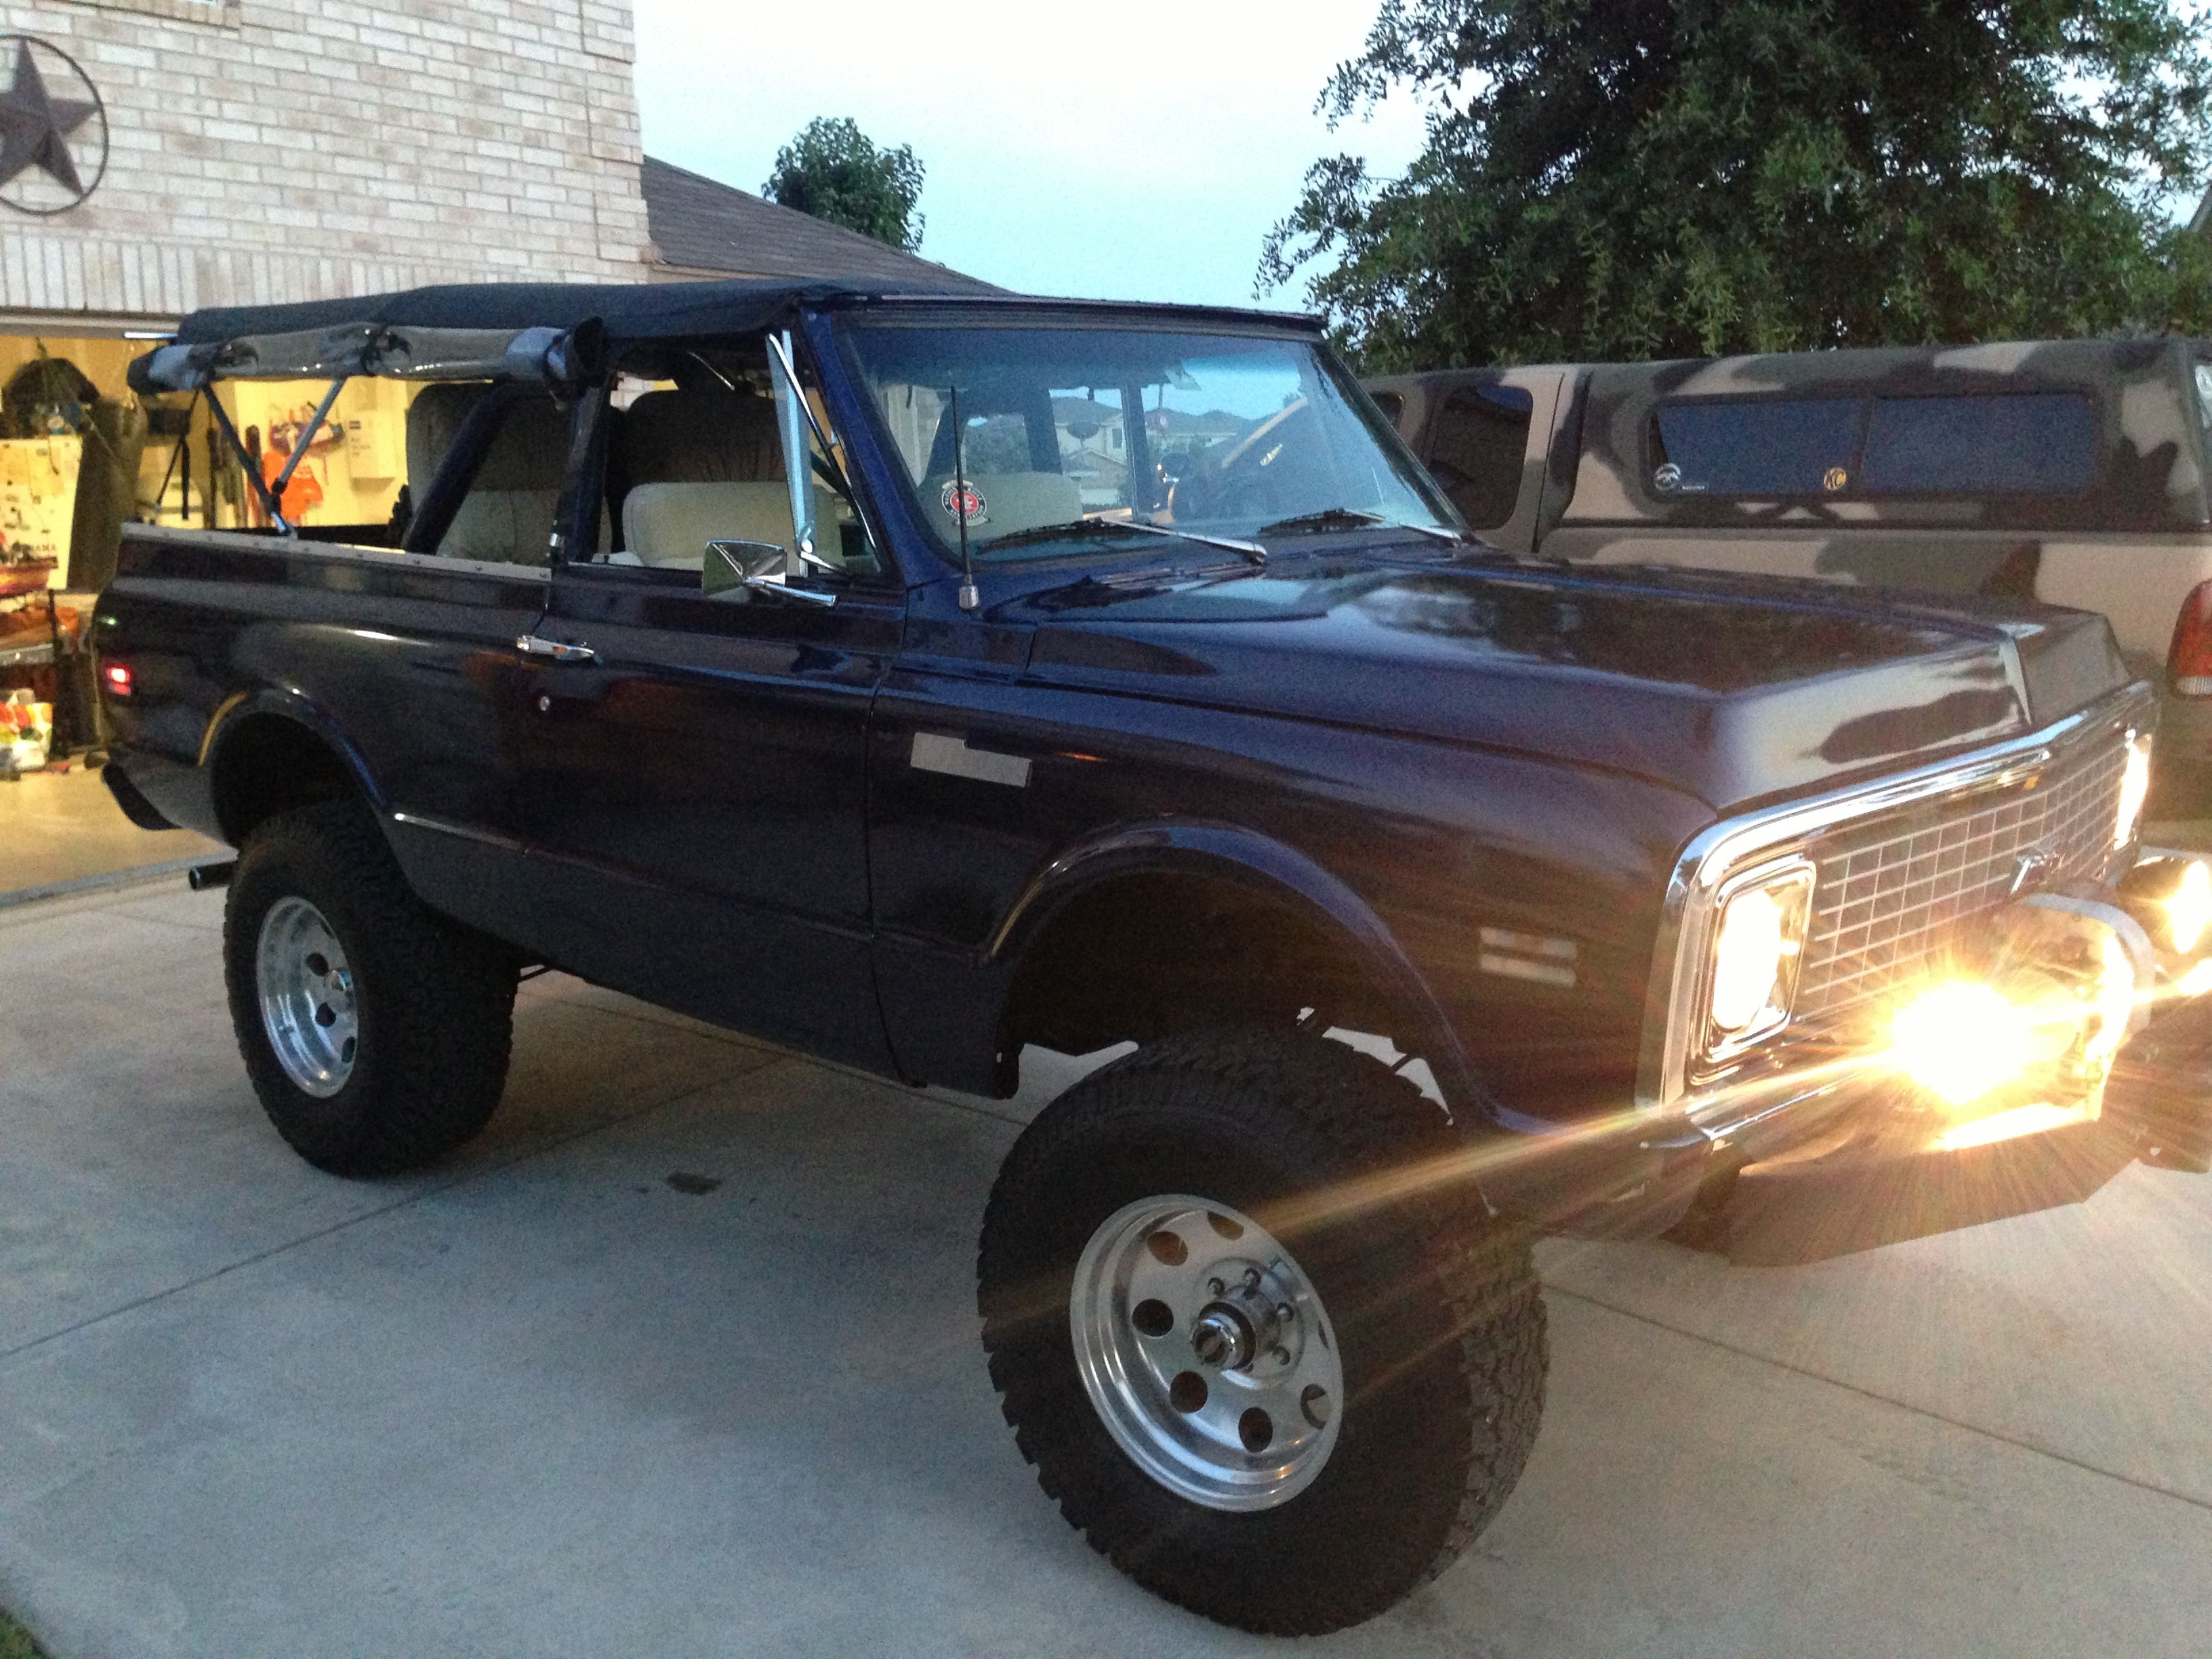 72 K5 Blazer For Sale Craigslist >> 72 Blazer Parts - Bing images